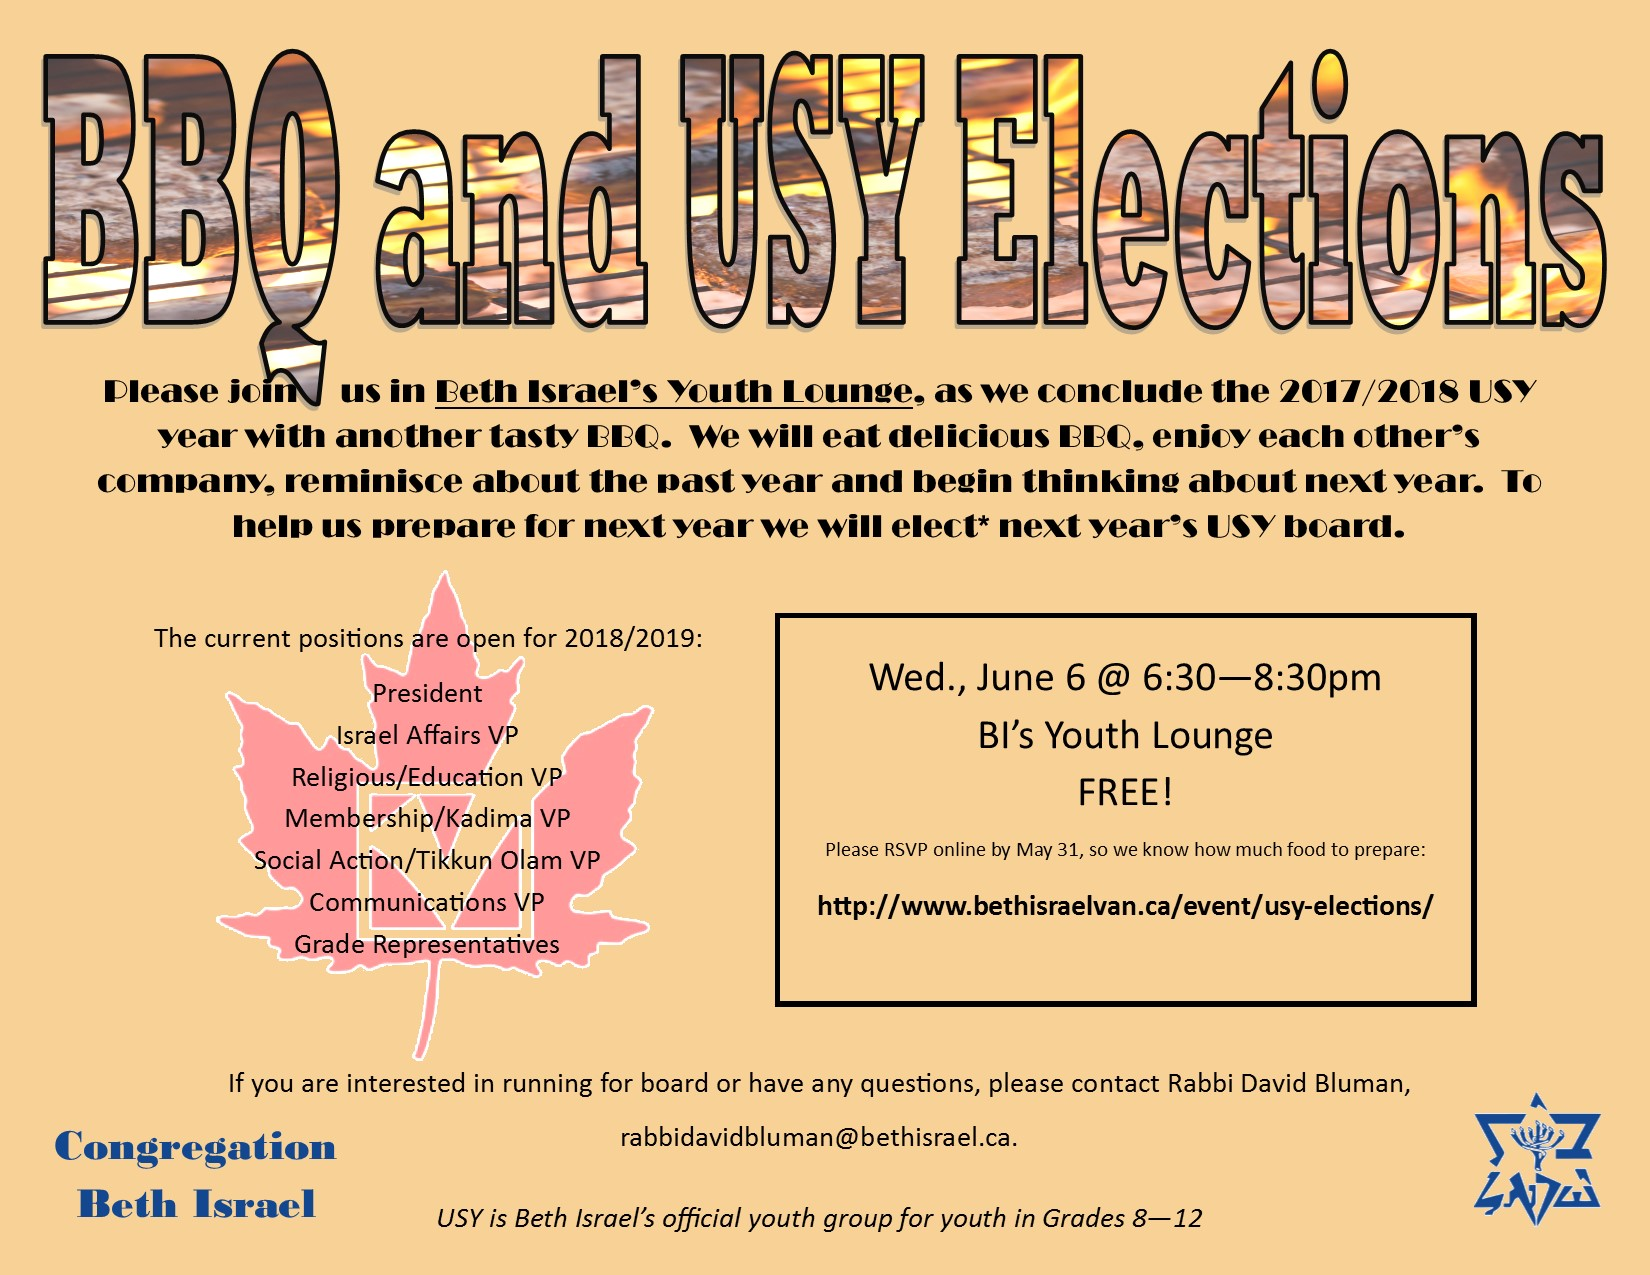 USY is Beth Israel's official youth group for those in Grades 8-12